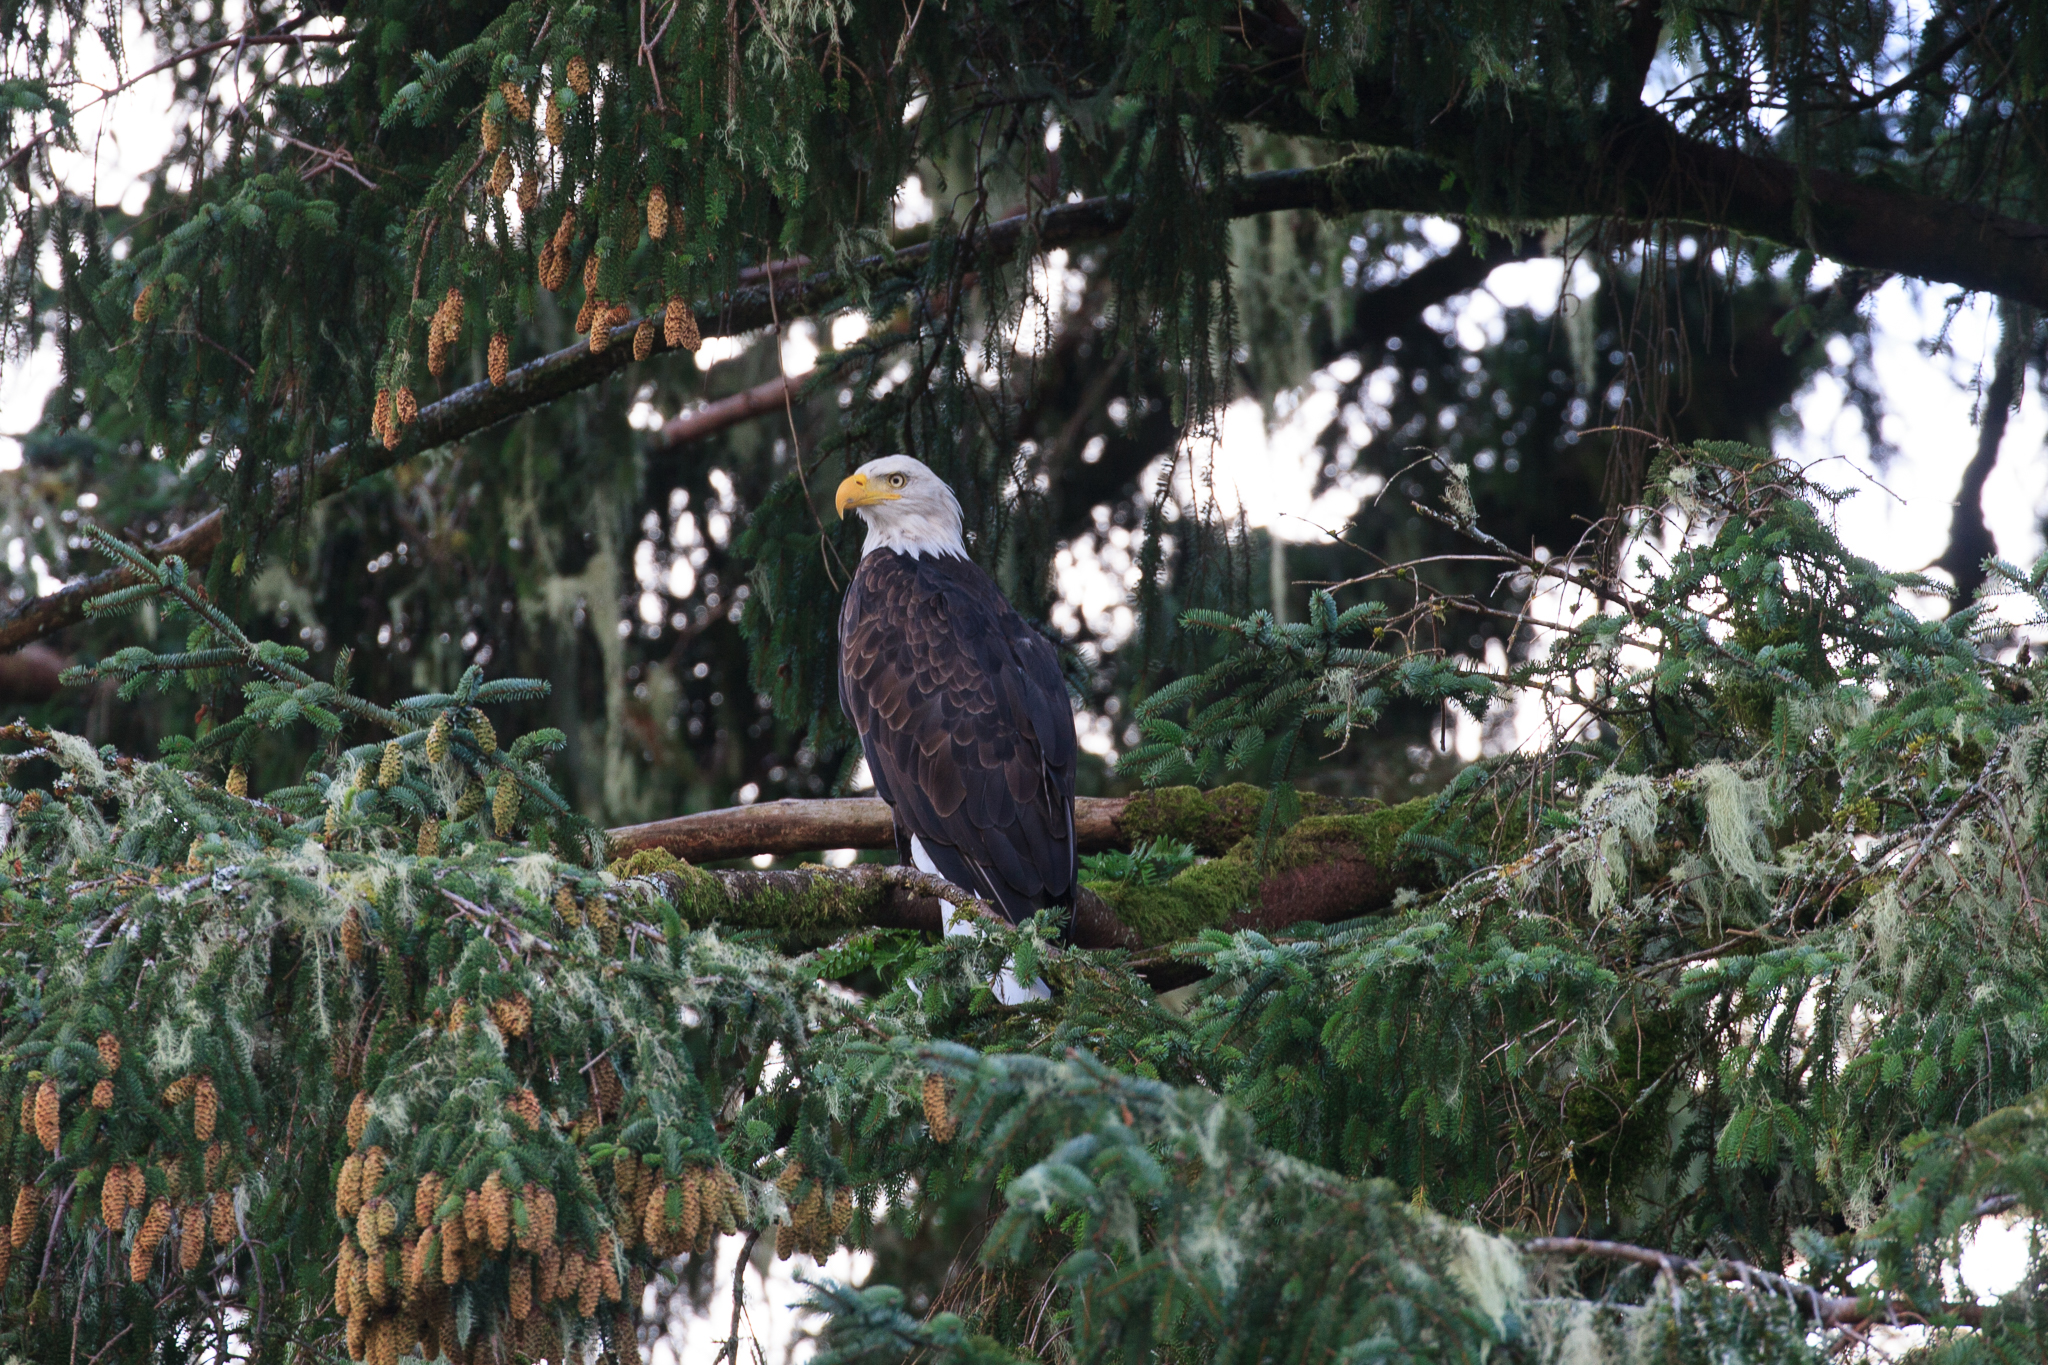 A bald eagle keeps watch from a perch above Khutze Bay.